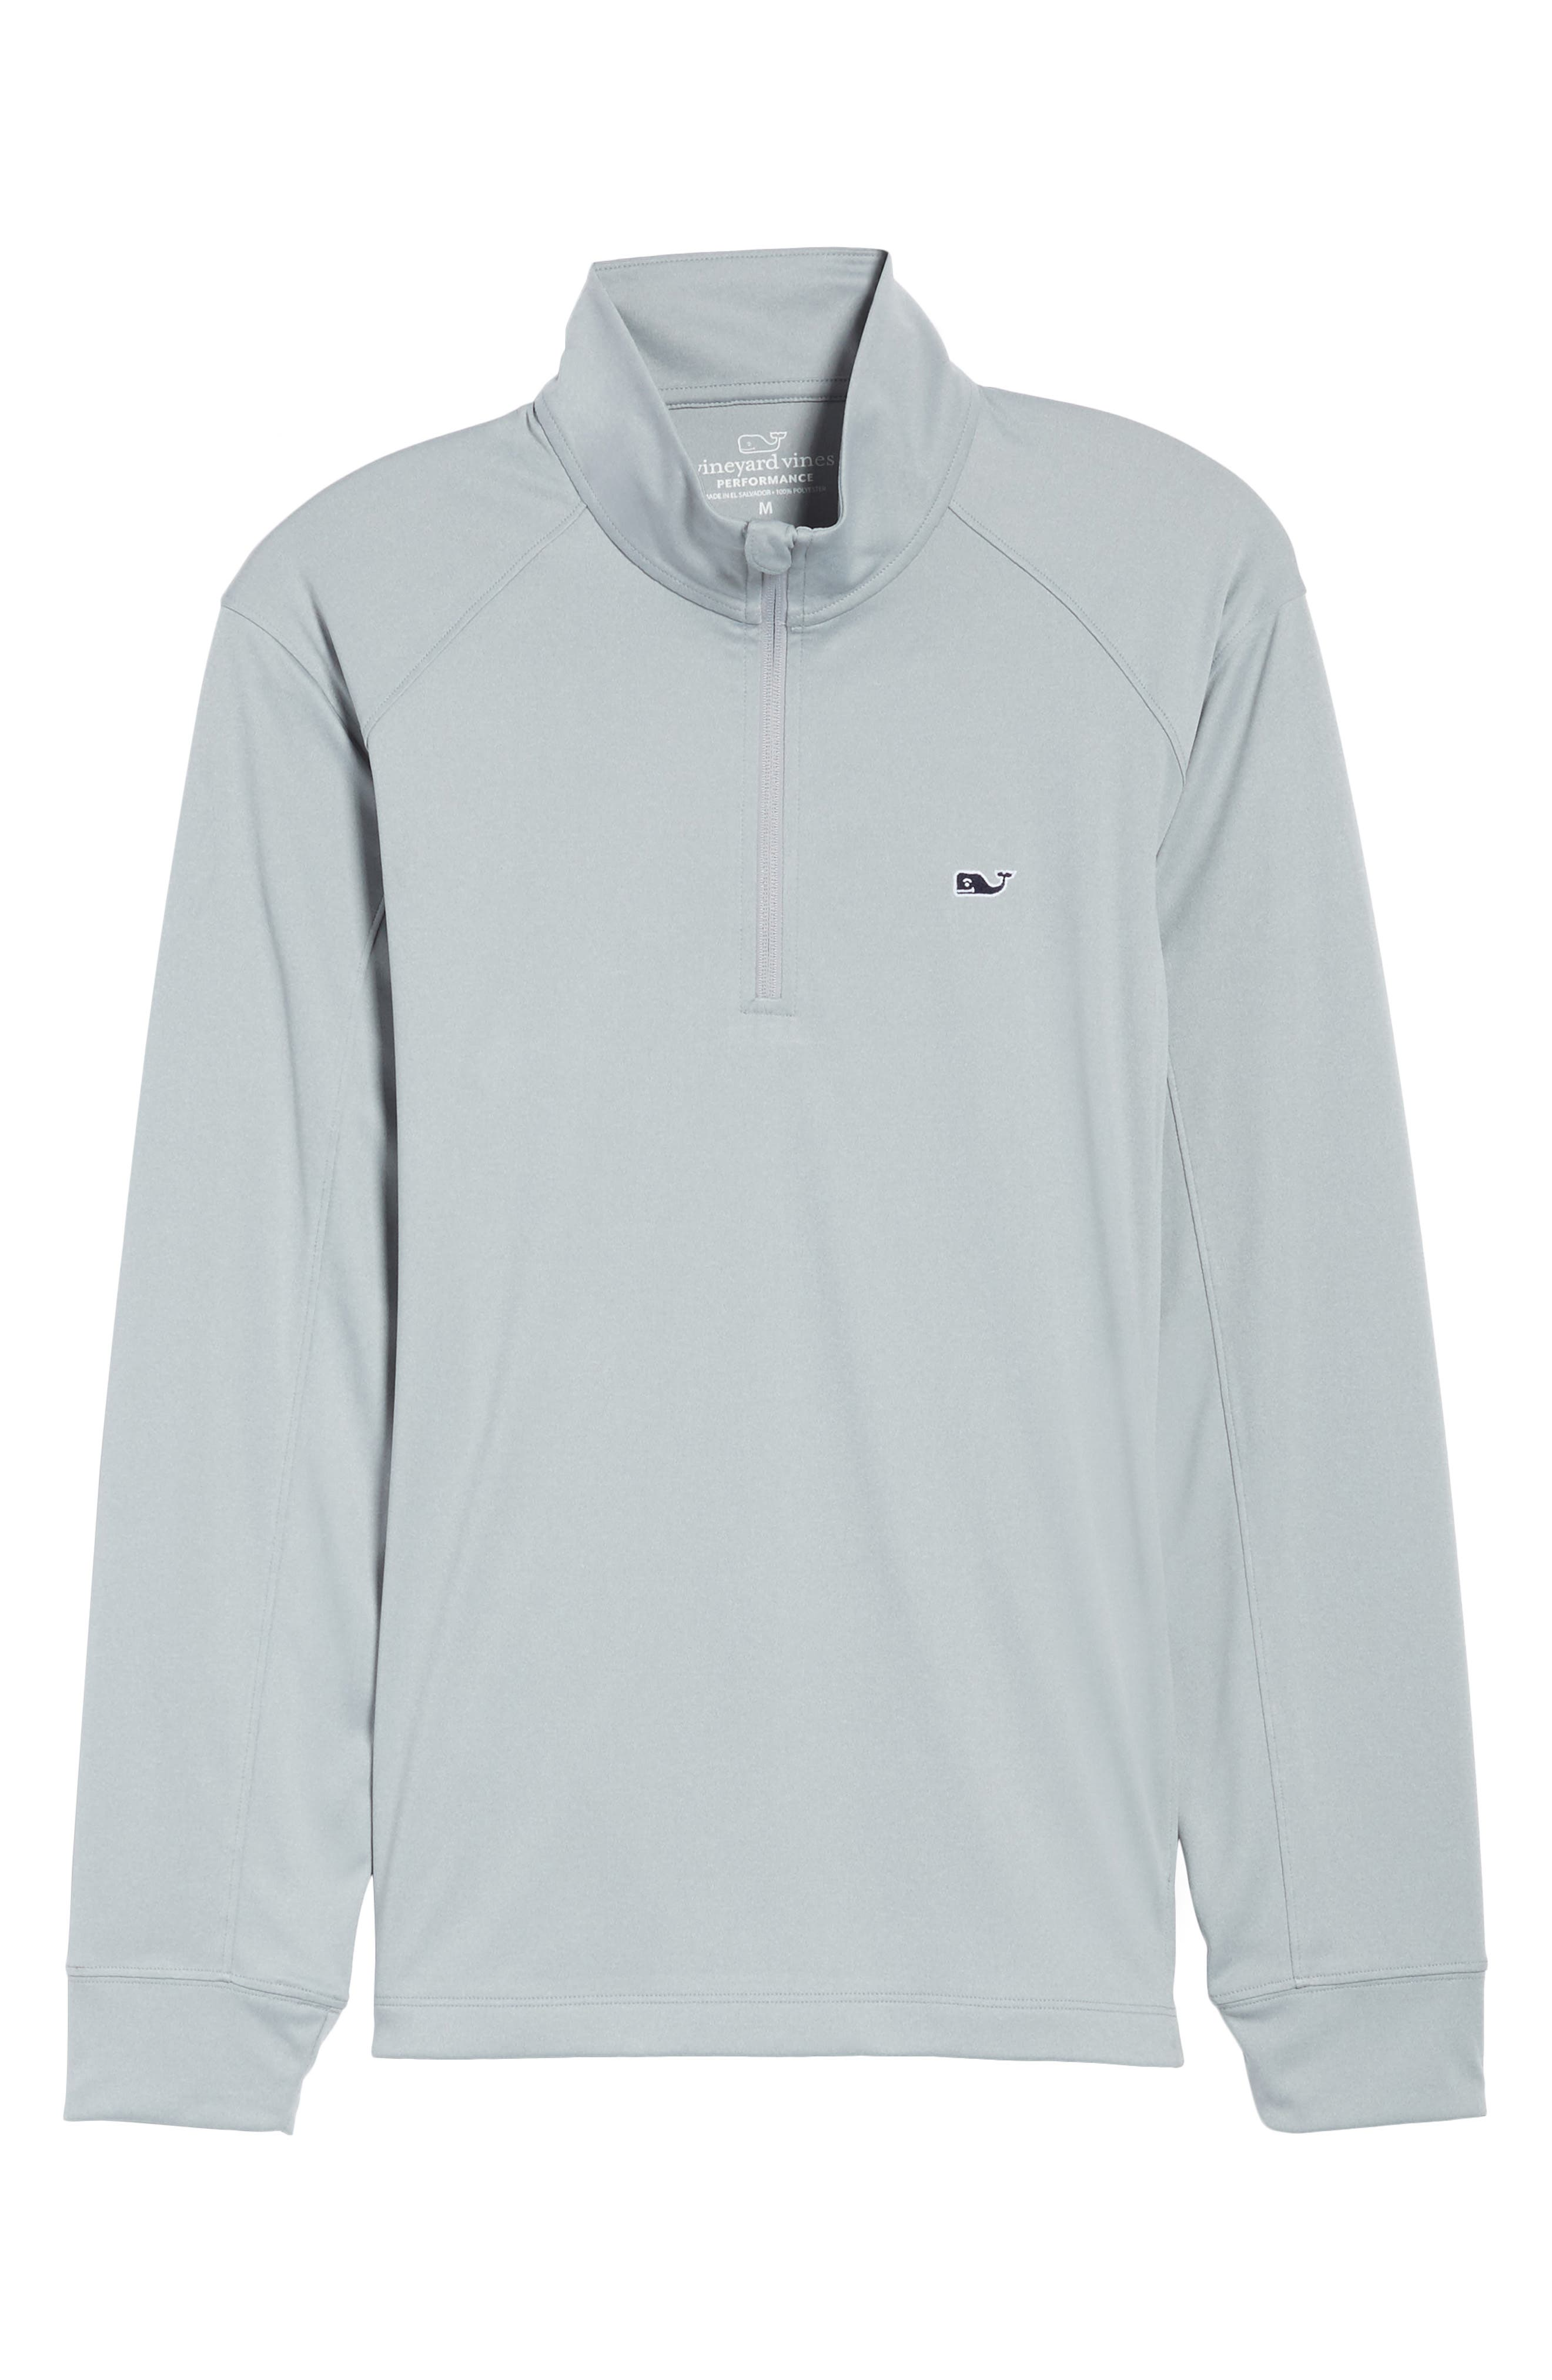 Heathered Quarter Zip Pullover,                             Alternate thumbnail 6, color,                             034